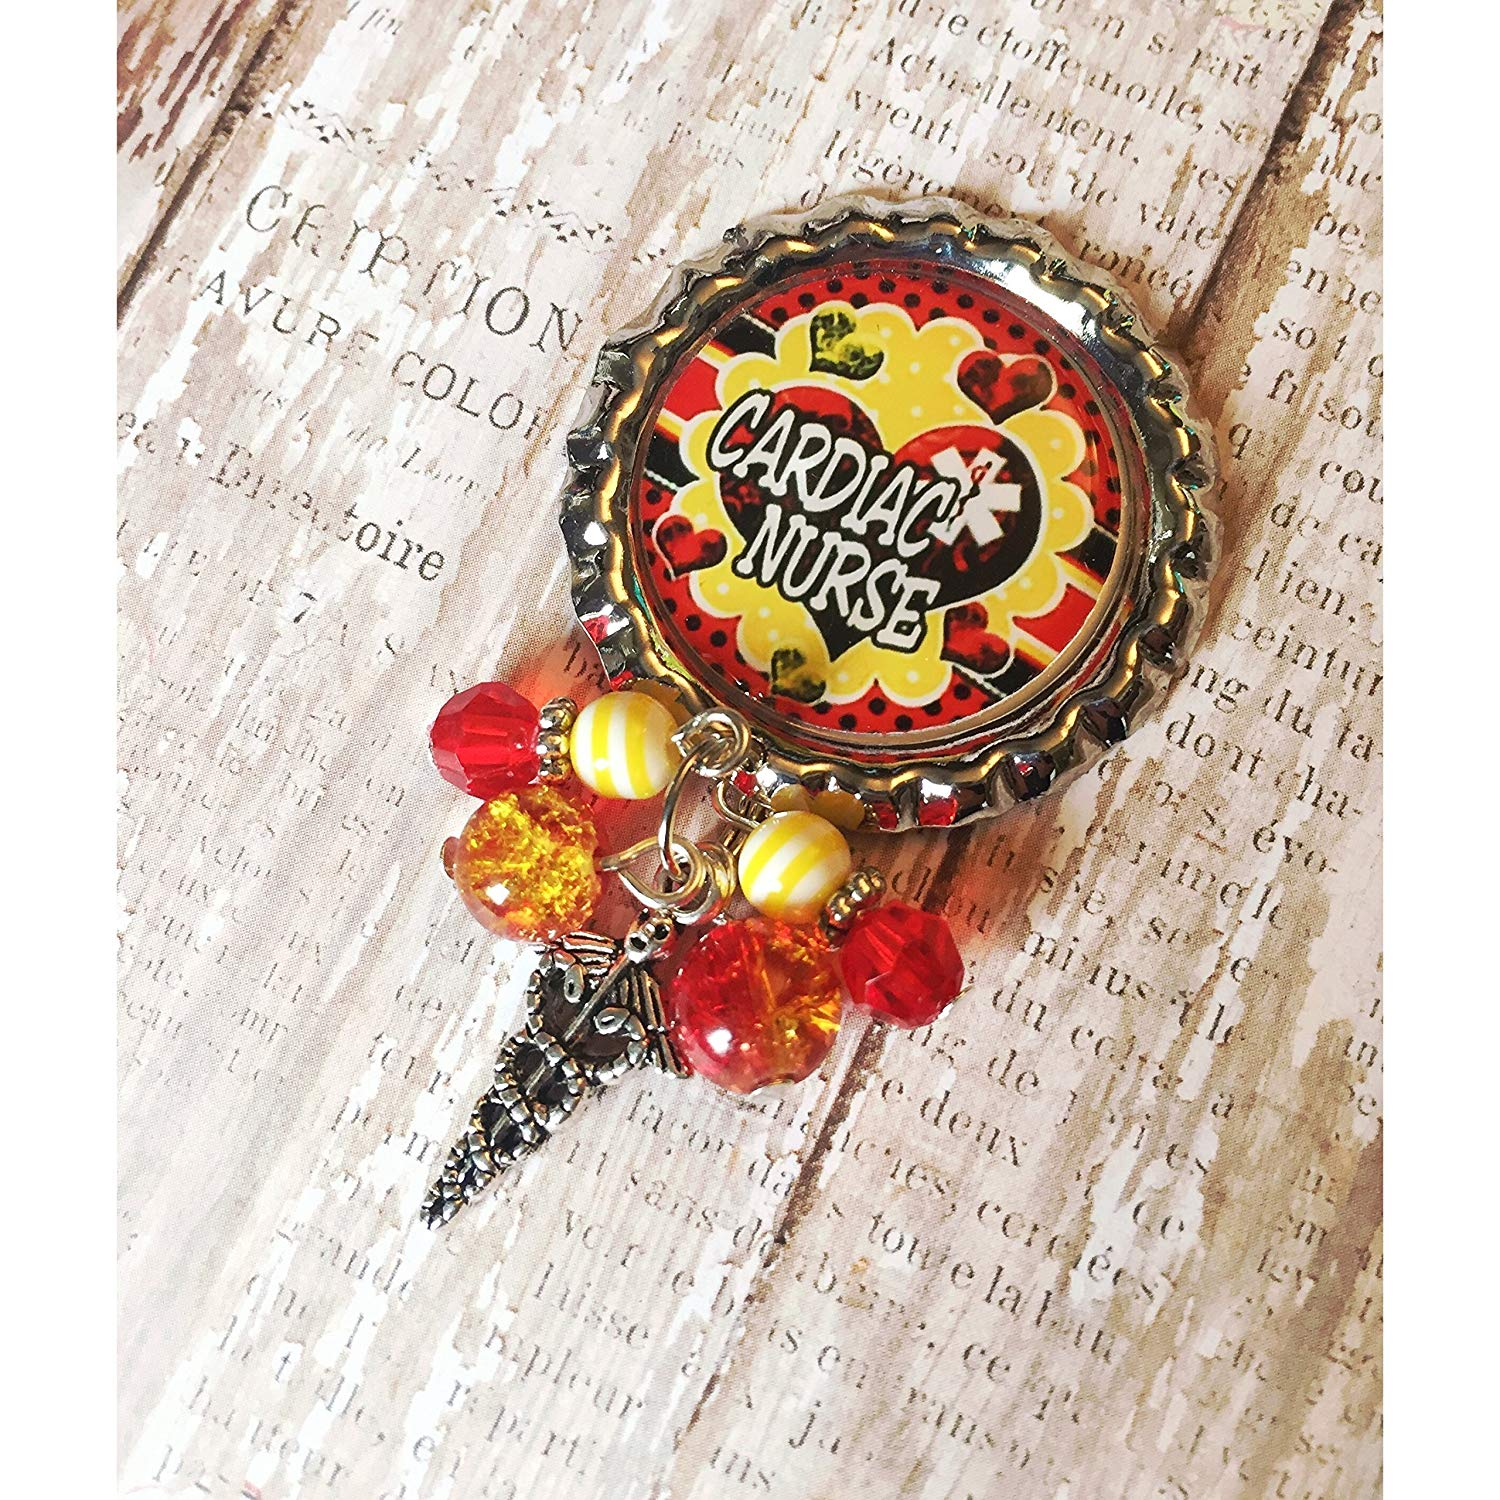 Nurse cardiac, OR Nurse, CMA medical assistant spring clip Badge ID holder with retractable reel with red and yellow beads and choice of charm